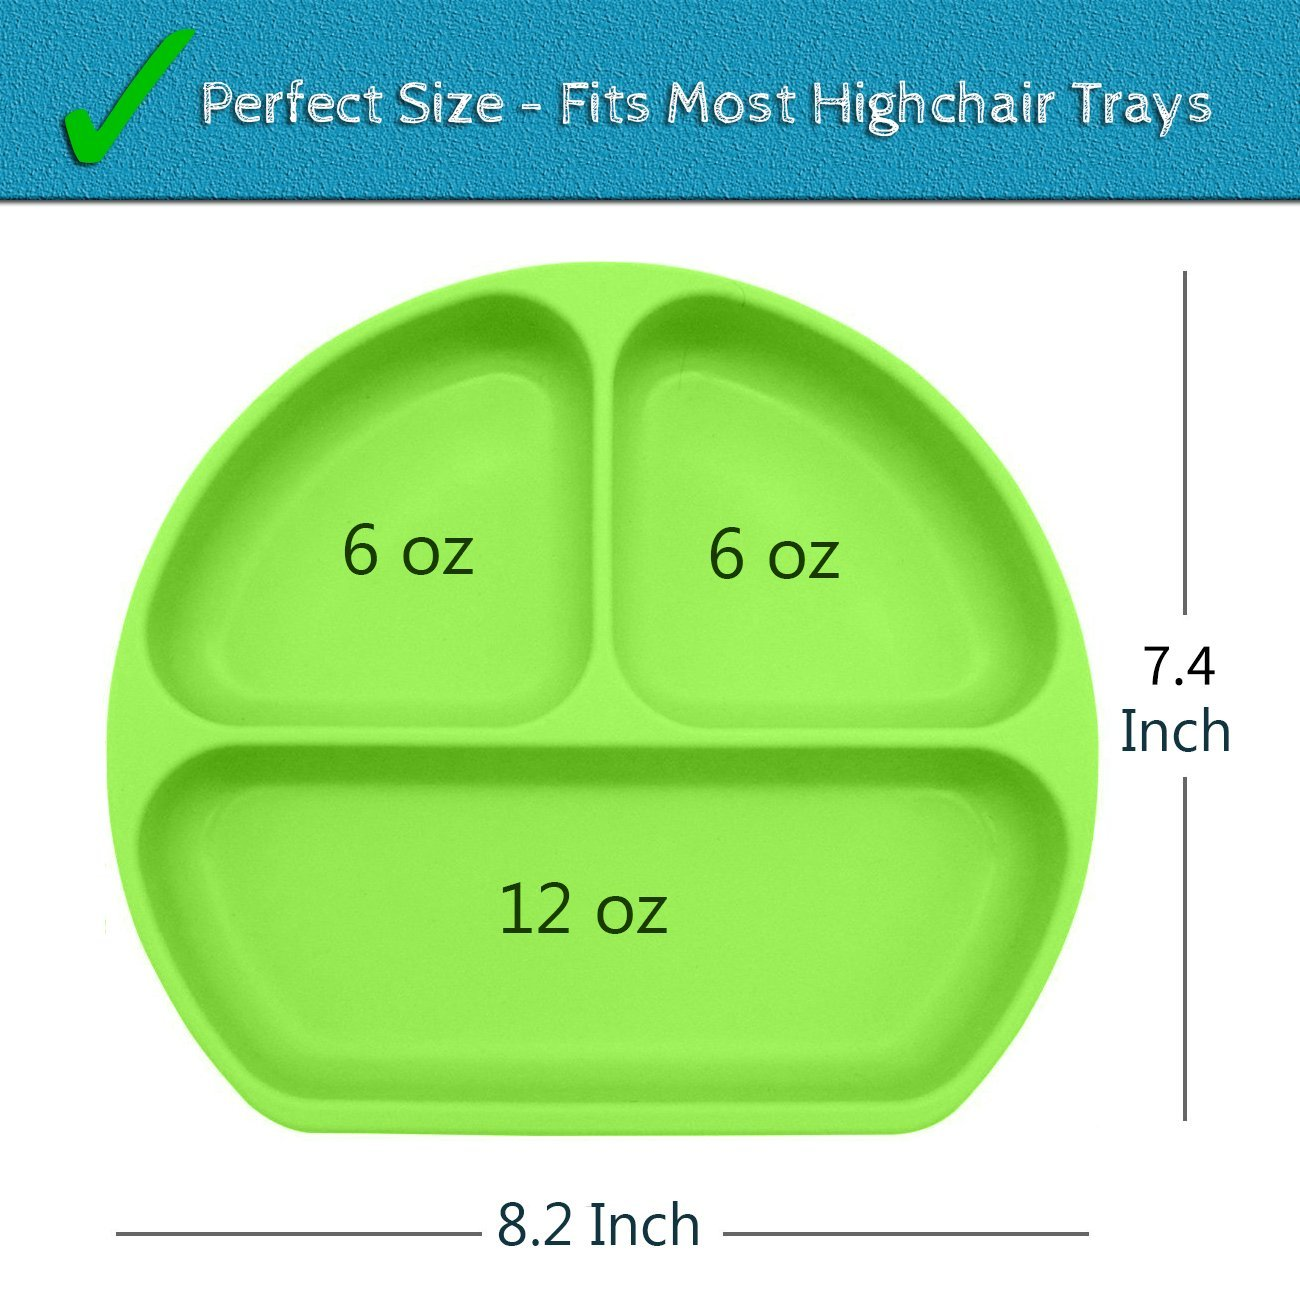 SiliKong Silicone Suction Plate for Toddlers, Fits Most Highchair Trays, BPA Free, Divided Baby Feeding Bowls Dishes for Kids (Green) by SiliKong (Image #5)